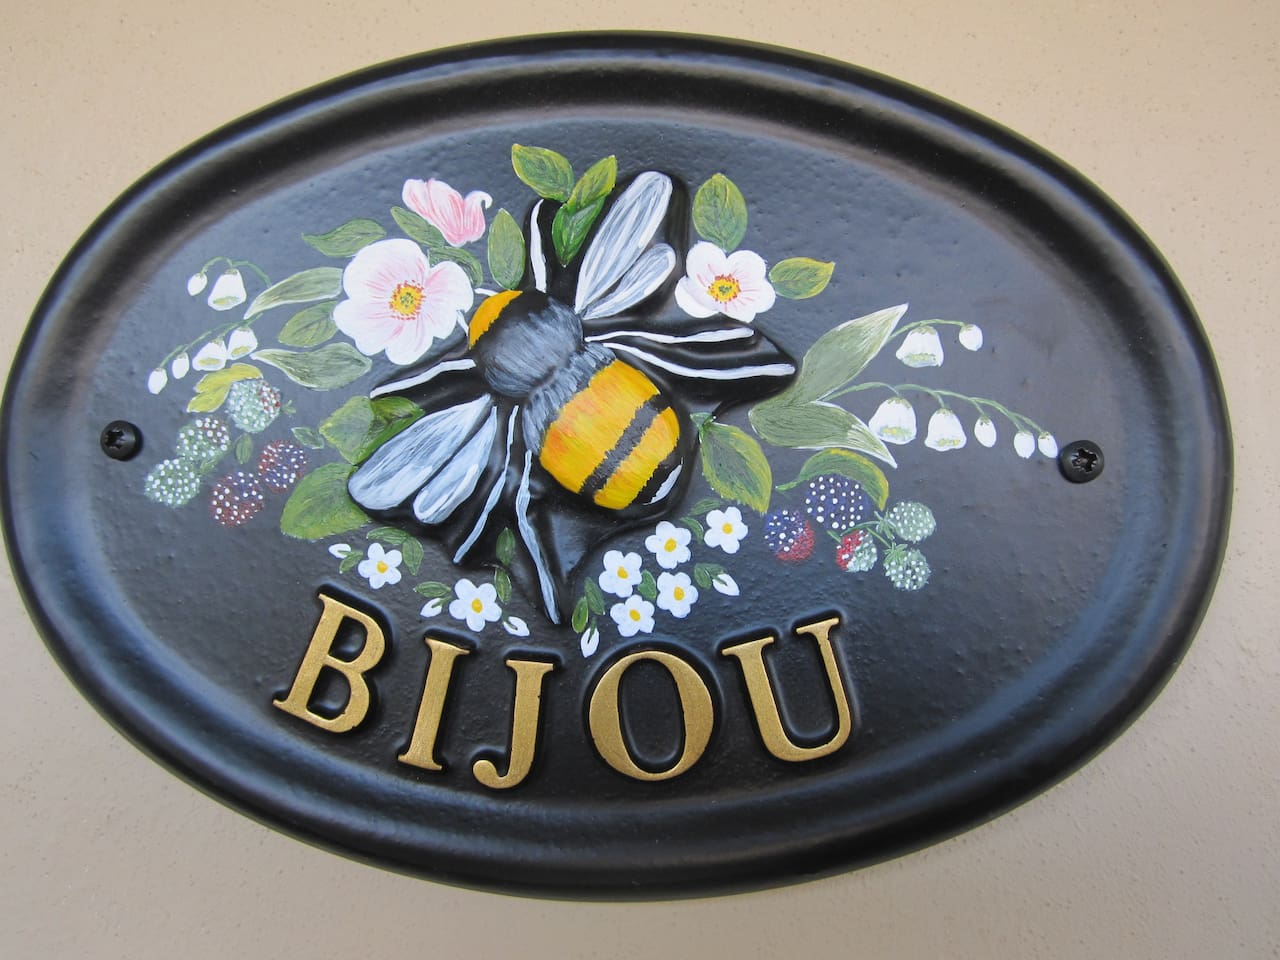 Welcome to 'Bijou'